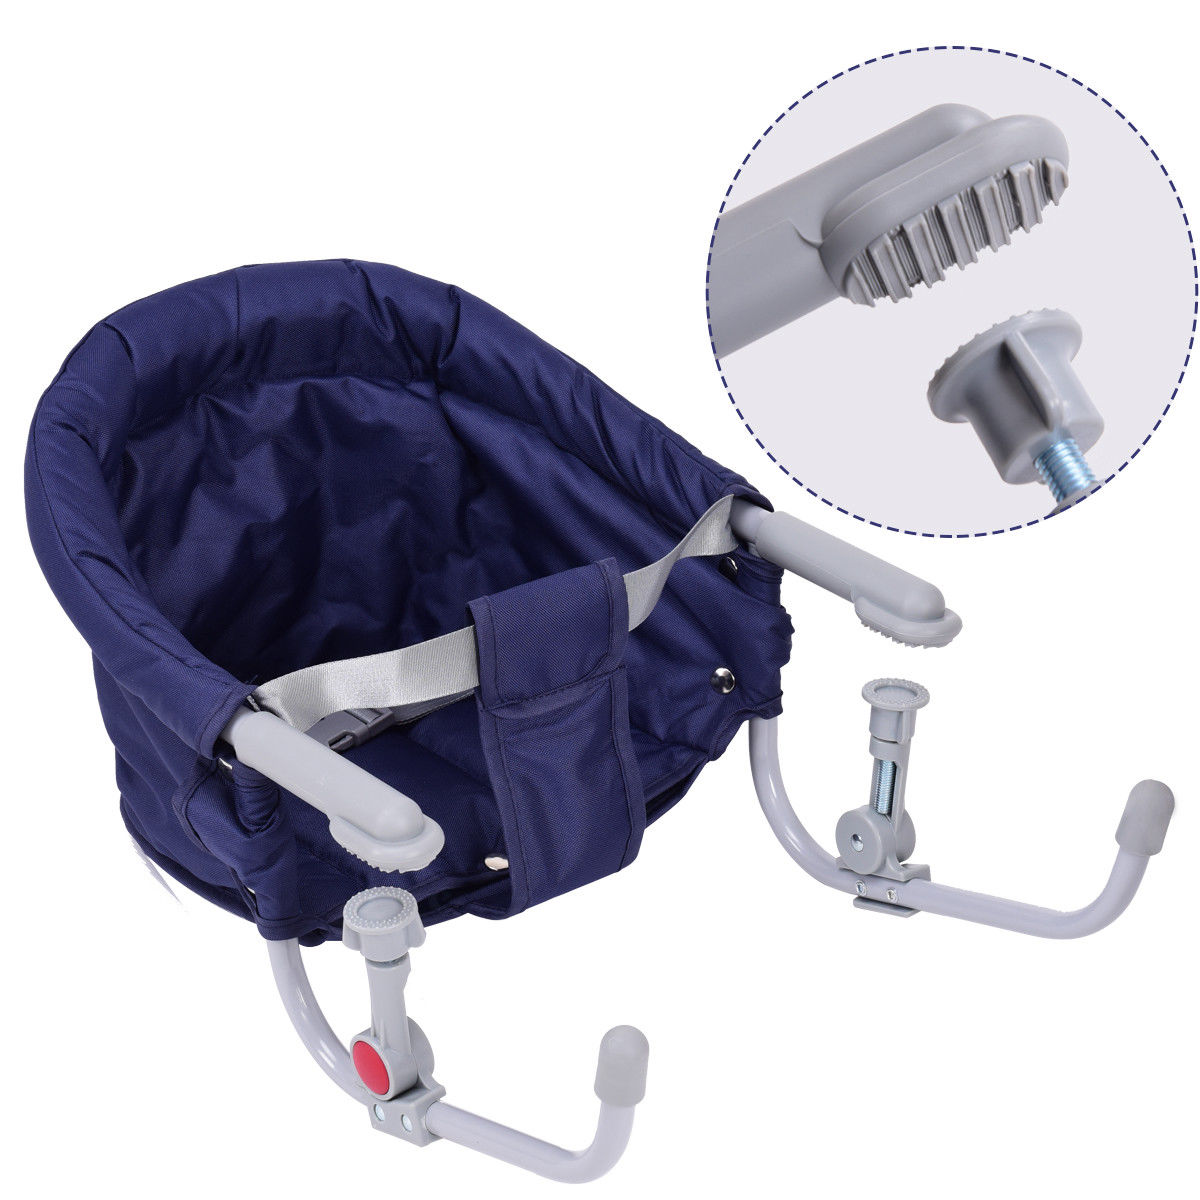 Gymax Portable Folding Baby Hook On Clip On High Chair Booster Fast Table Seat Blue by Gymax